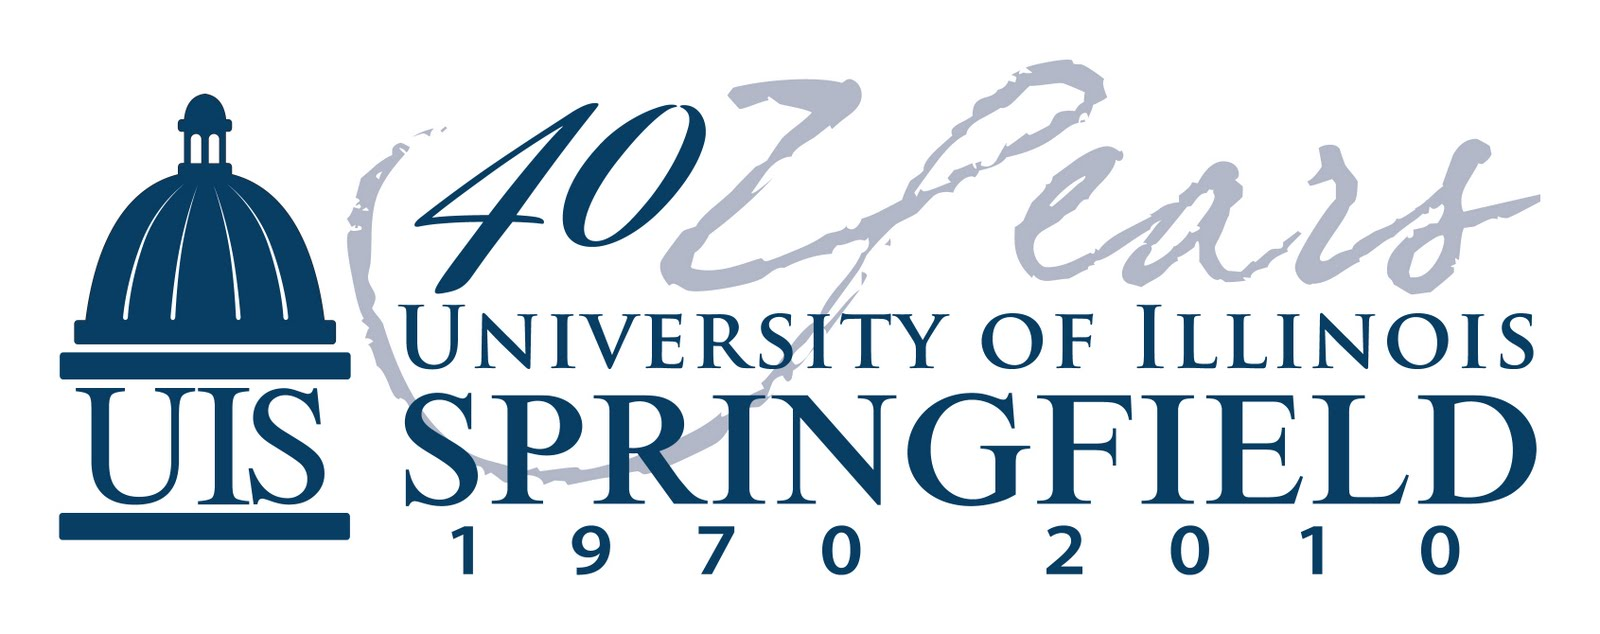 UIS Online Degrees - University of Illinois at Springfield